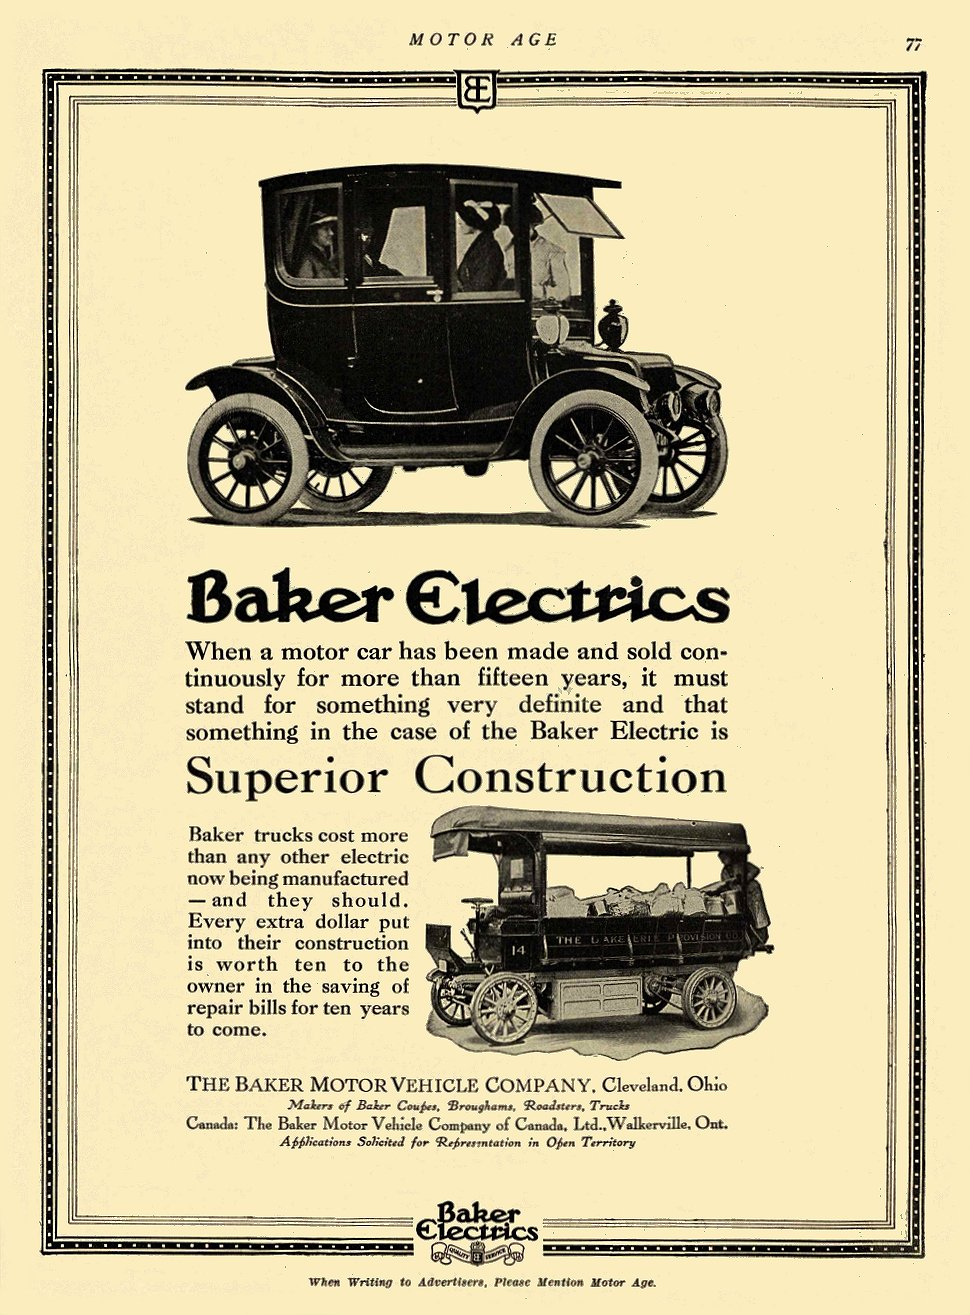 1913 9 18 BAKER Electric Superior Construction THE BAKER MOTOR VEHICLE COMPANY Cleveland, OHIO MOTOR AGE September 18, 1913 8.5″x11.5″ page 77